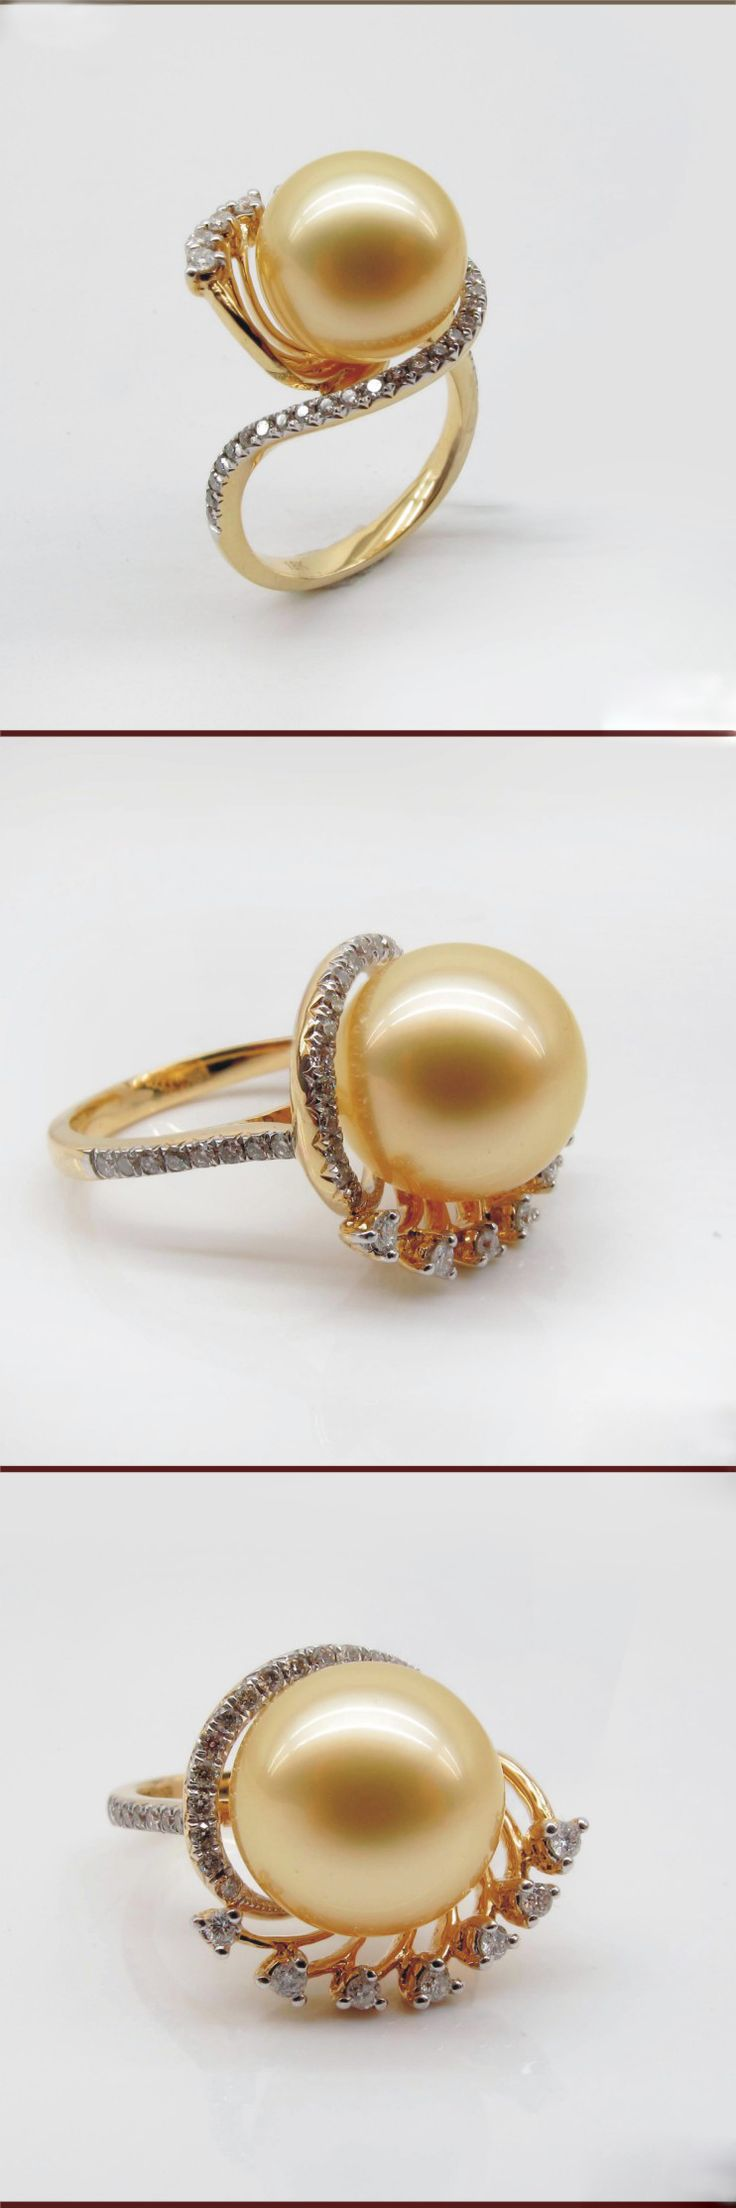 South Sea Pearl Ring With Diamonds 1011dzk100